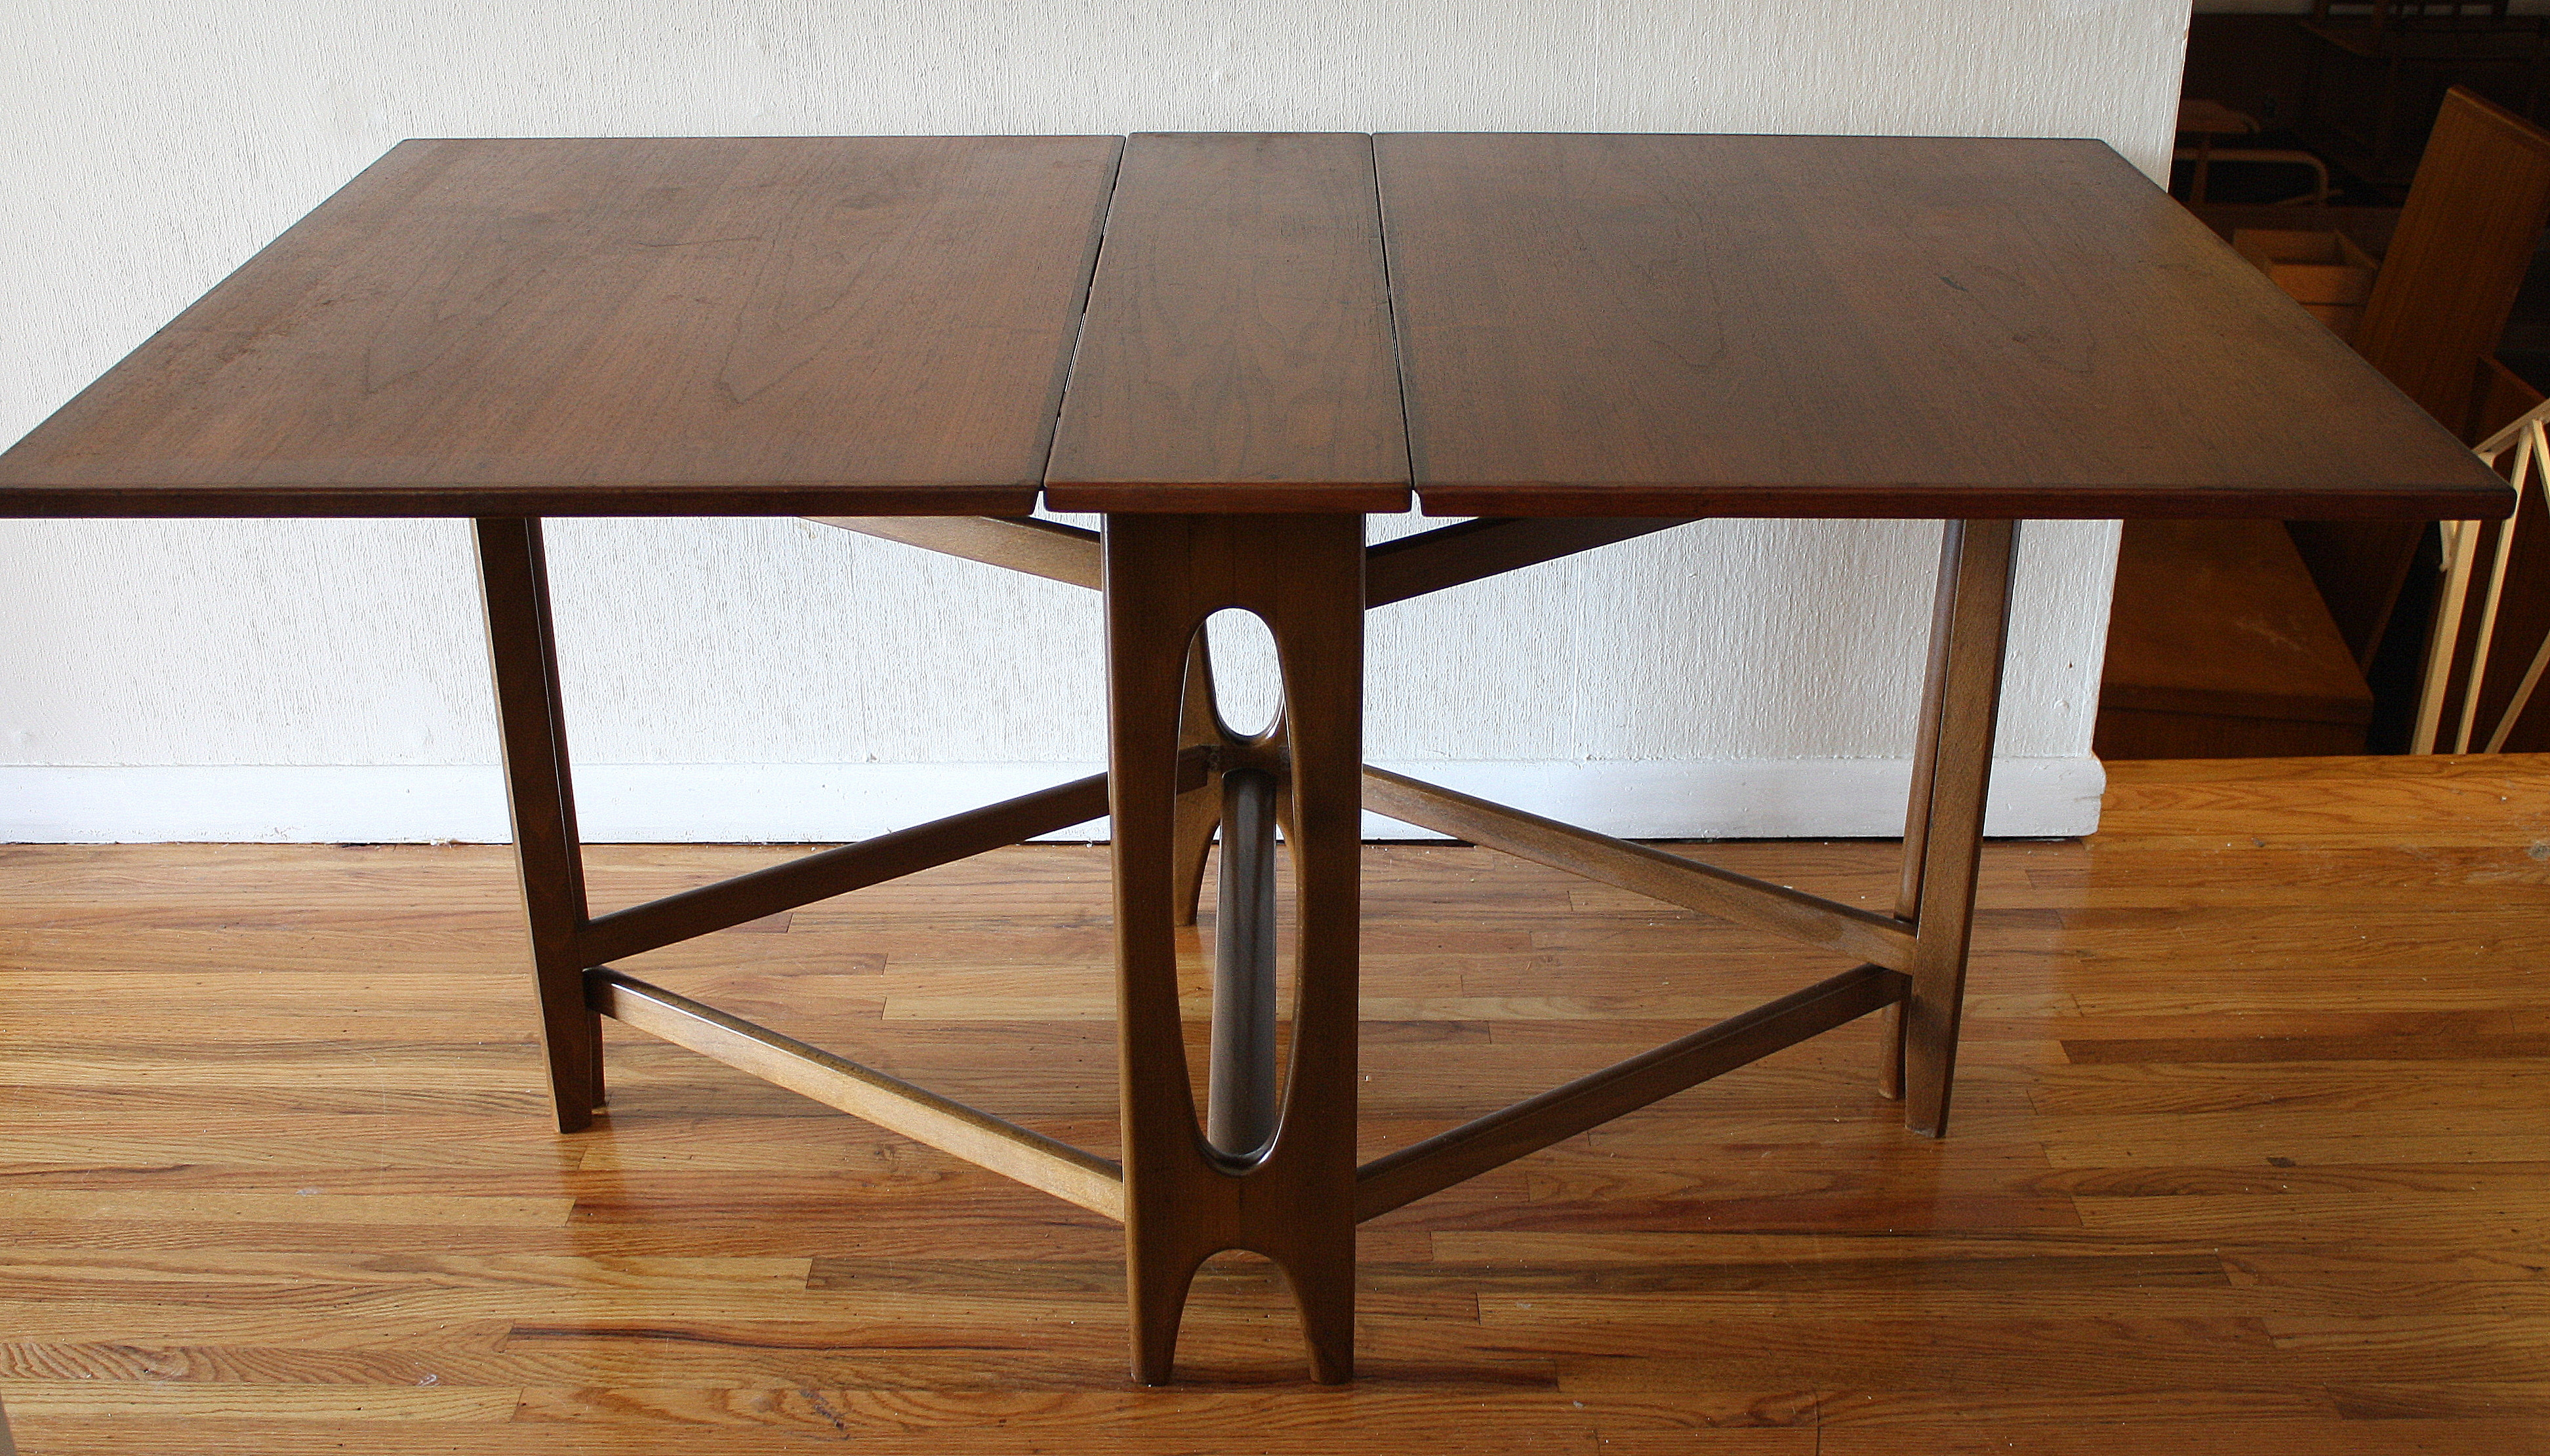 Best ideas about Foldable Dining Table . Save or Pin Danish folding dining table 2 Now.